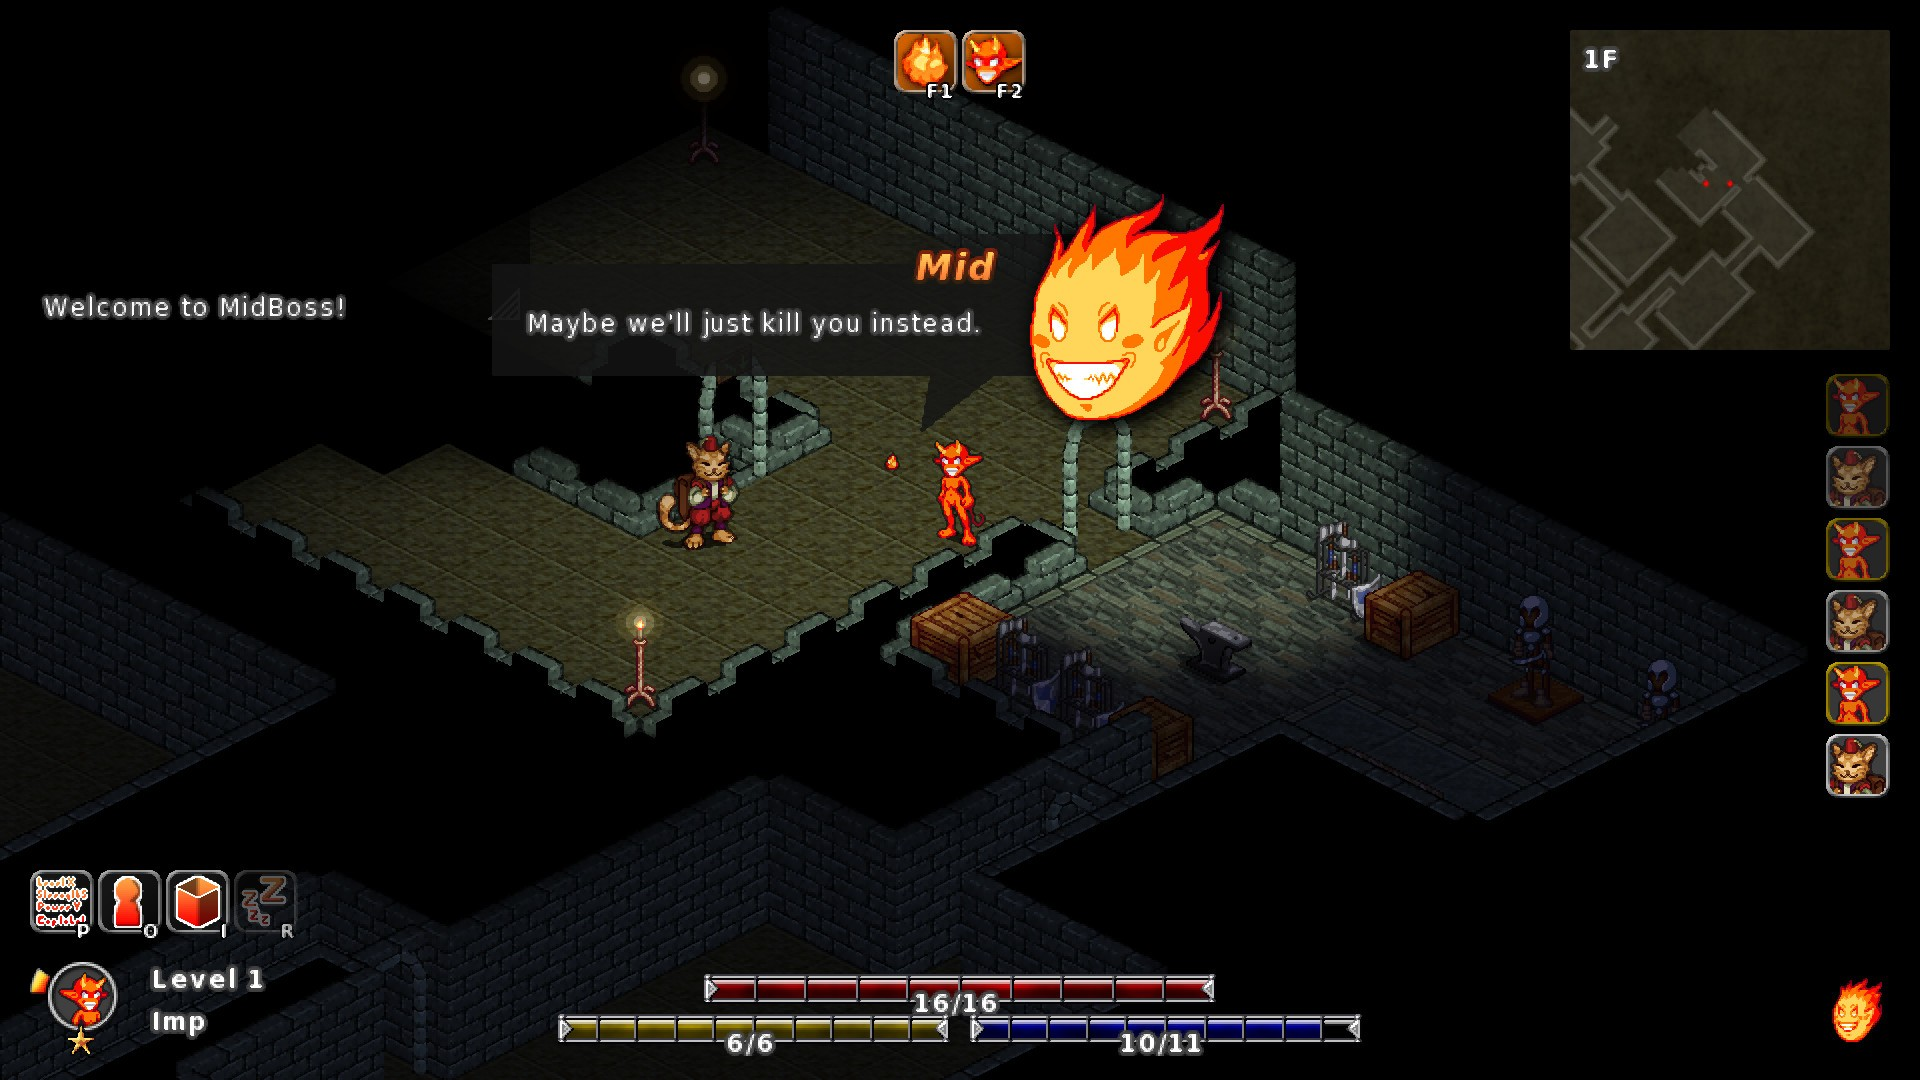 casual, General, indie, Kitsune Games, MidBoss, MidBoss Review, PC, PC Review, Roguelike, Role Playing Game, RPG, strategy, Traditional Roguelike, turn-based